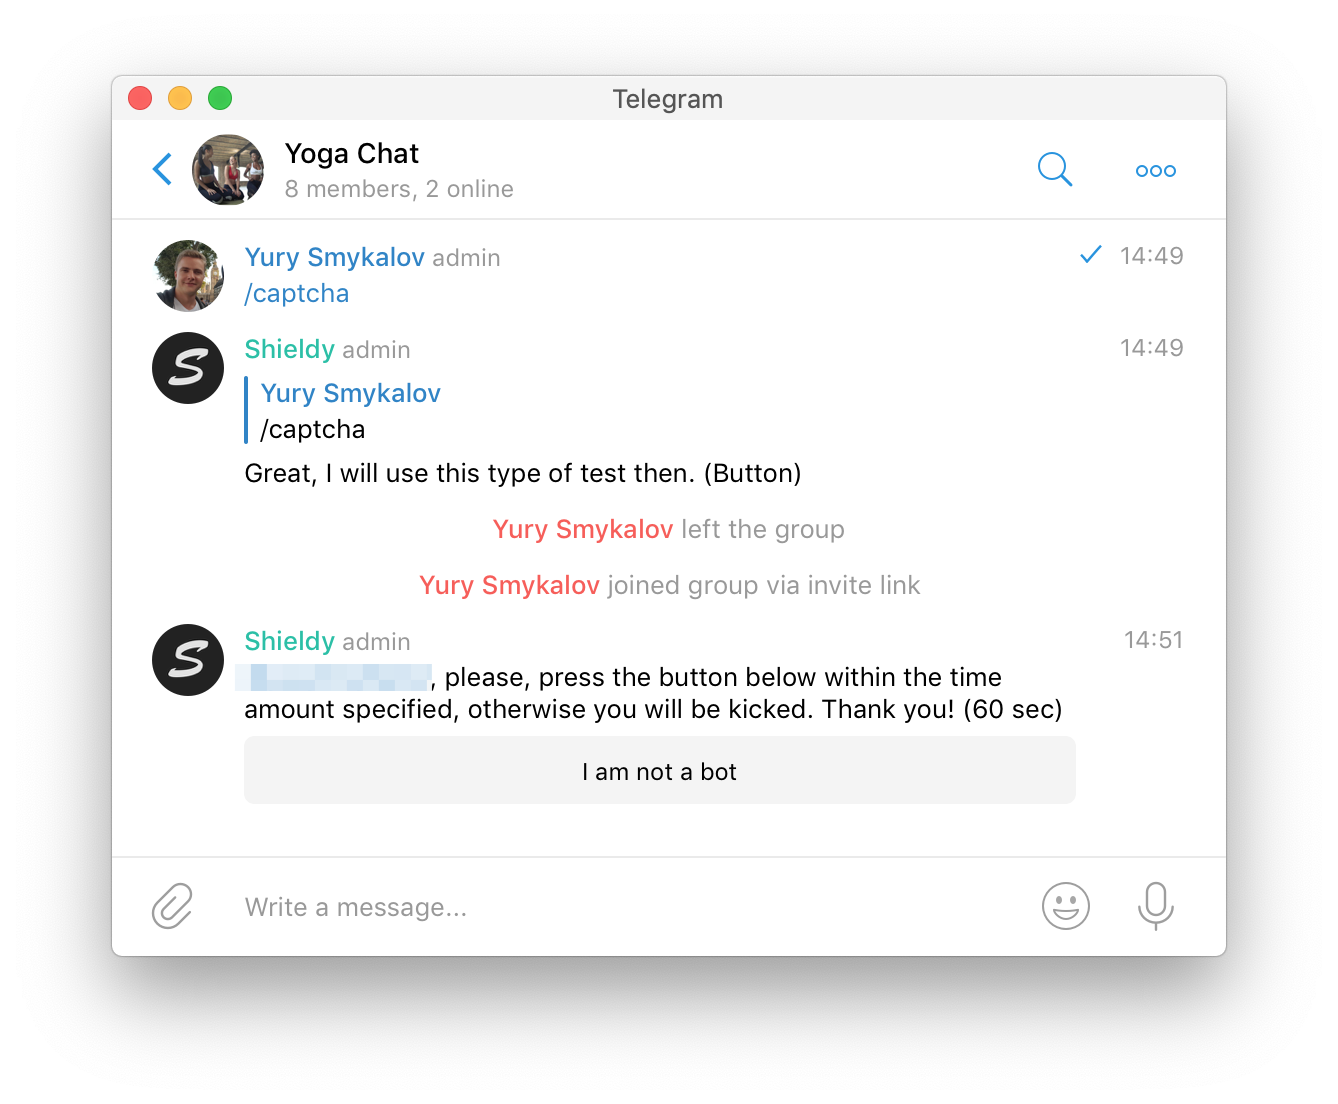 5 Telegram Bots For Groups Every Community Manager Should Know About